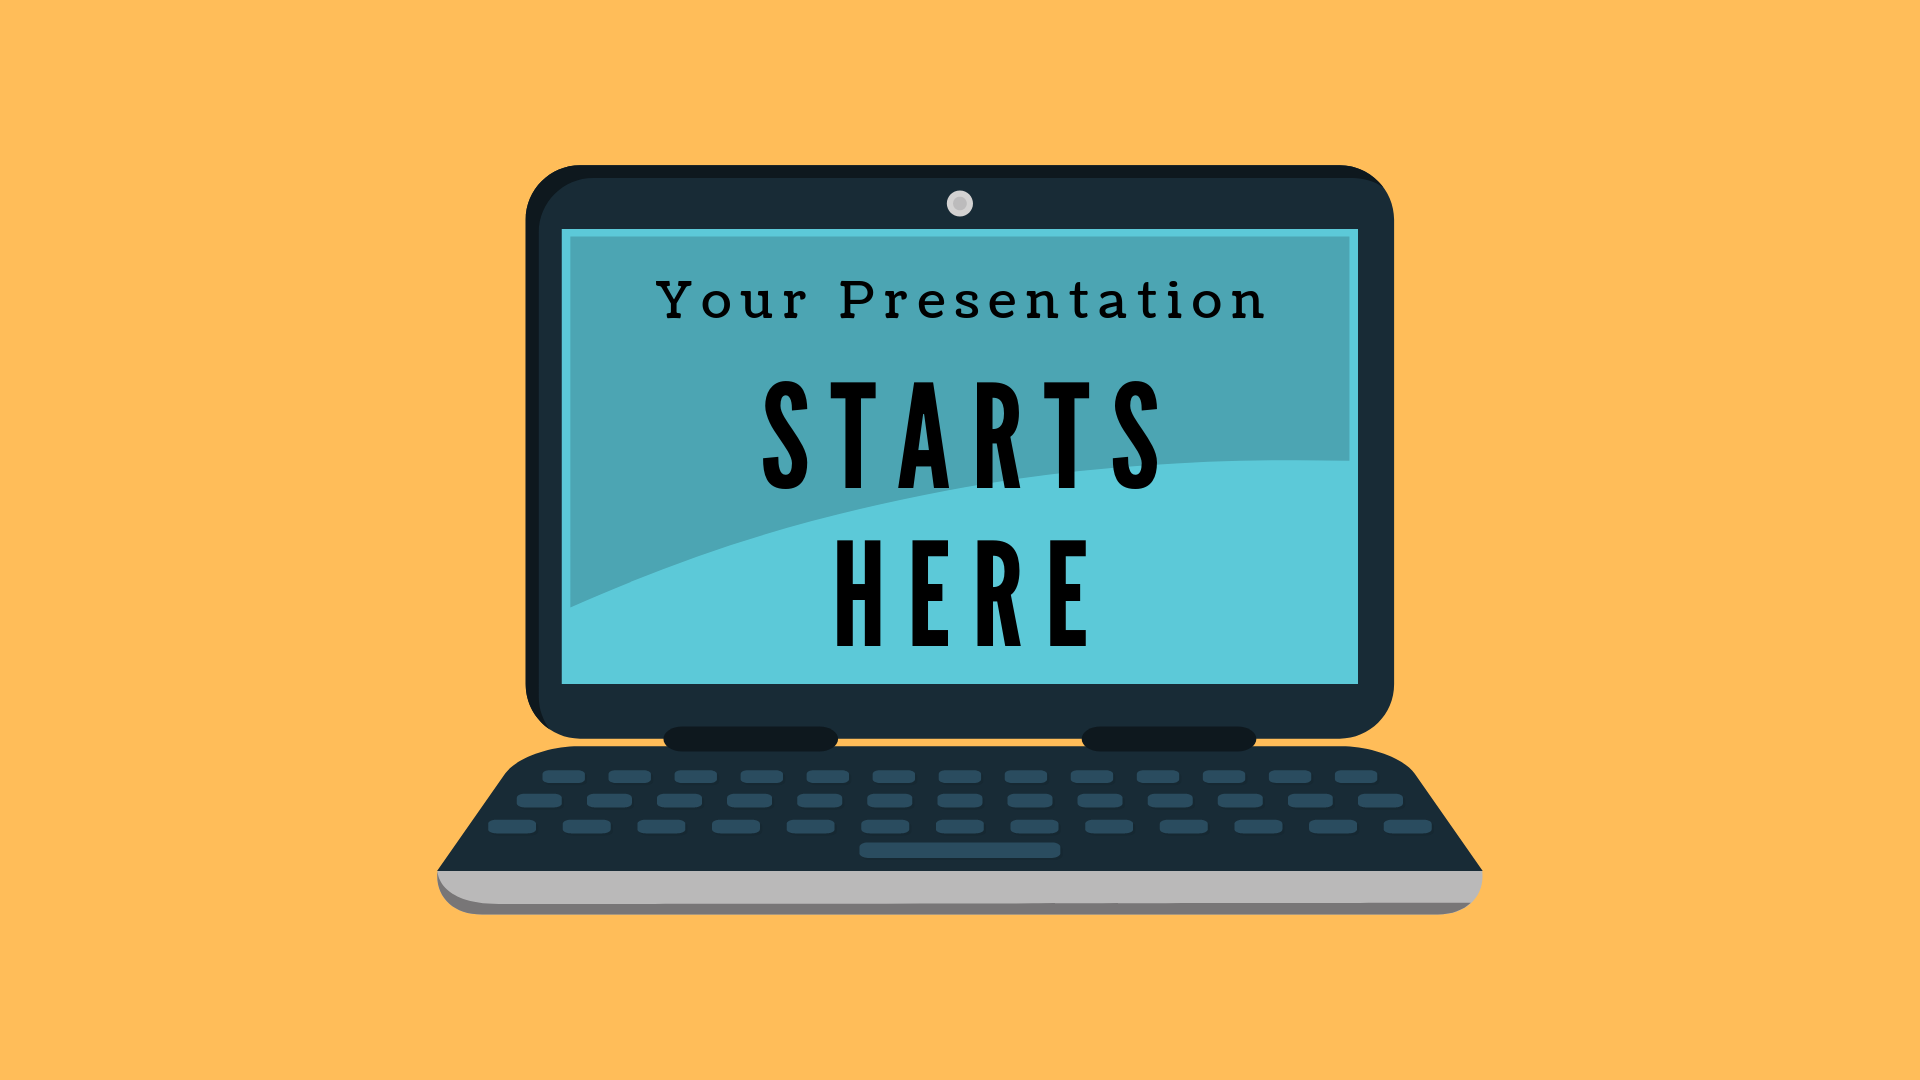 - Whether you need your PowerPoint slides looking great for an internal presentation, or you're a startup that needs a slick and professional pitch deck, we can help.We'll work with you to identify key points, create a script and storyboard to engage your audience and finally craft a presentation that really communicates your core message.